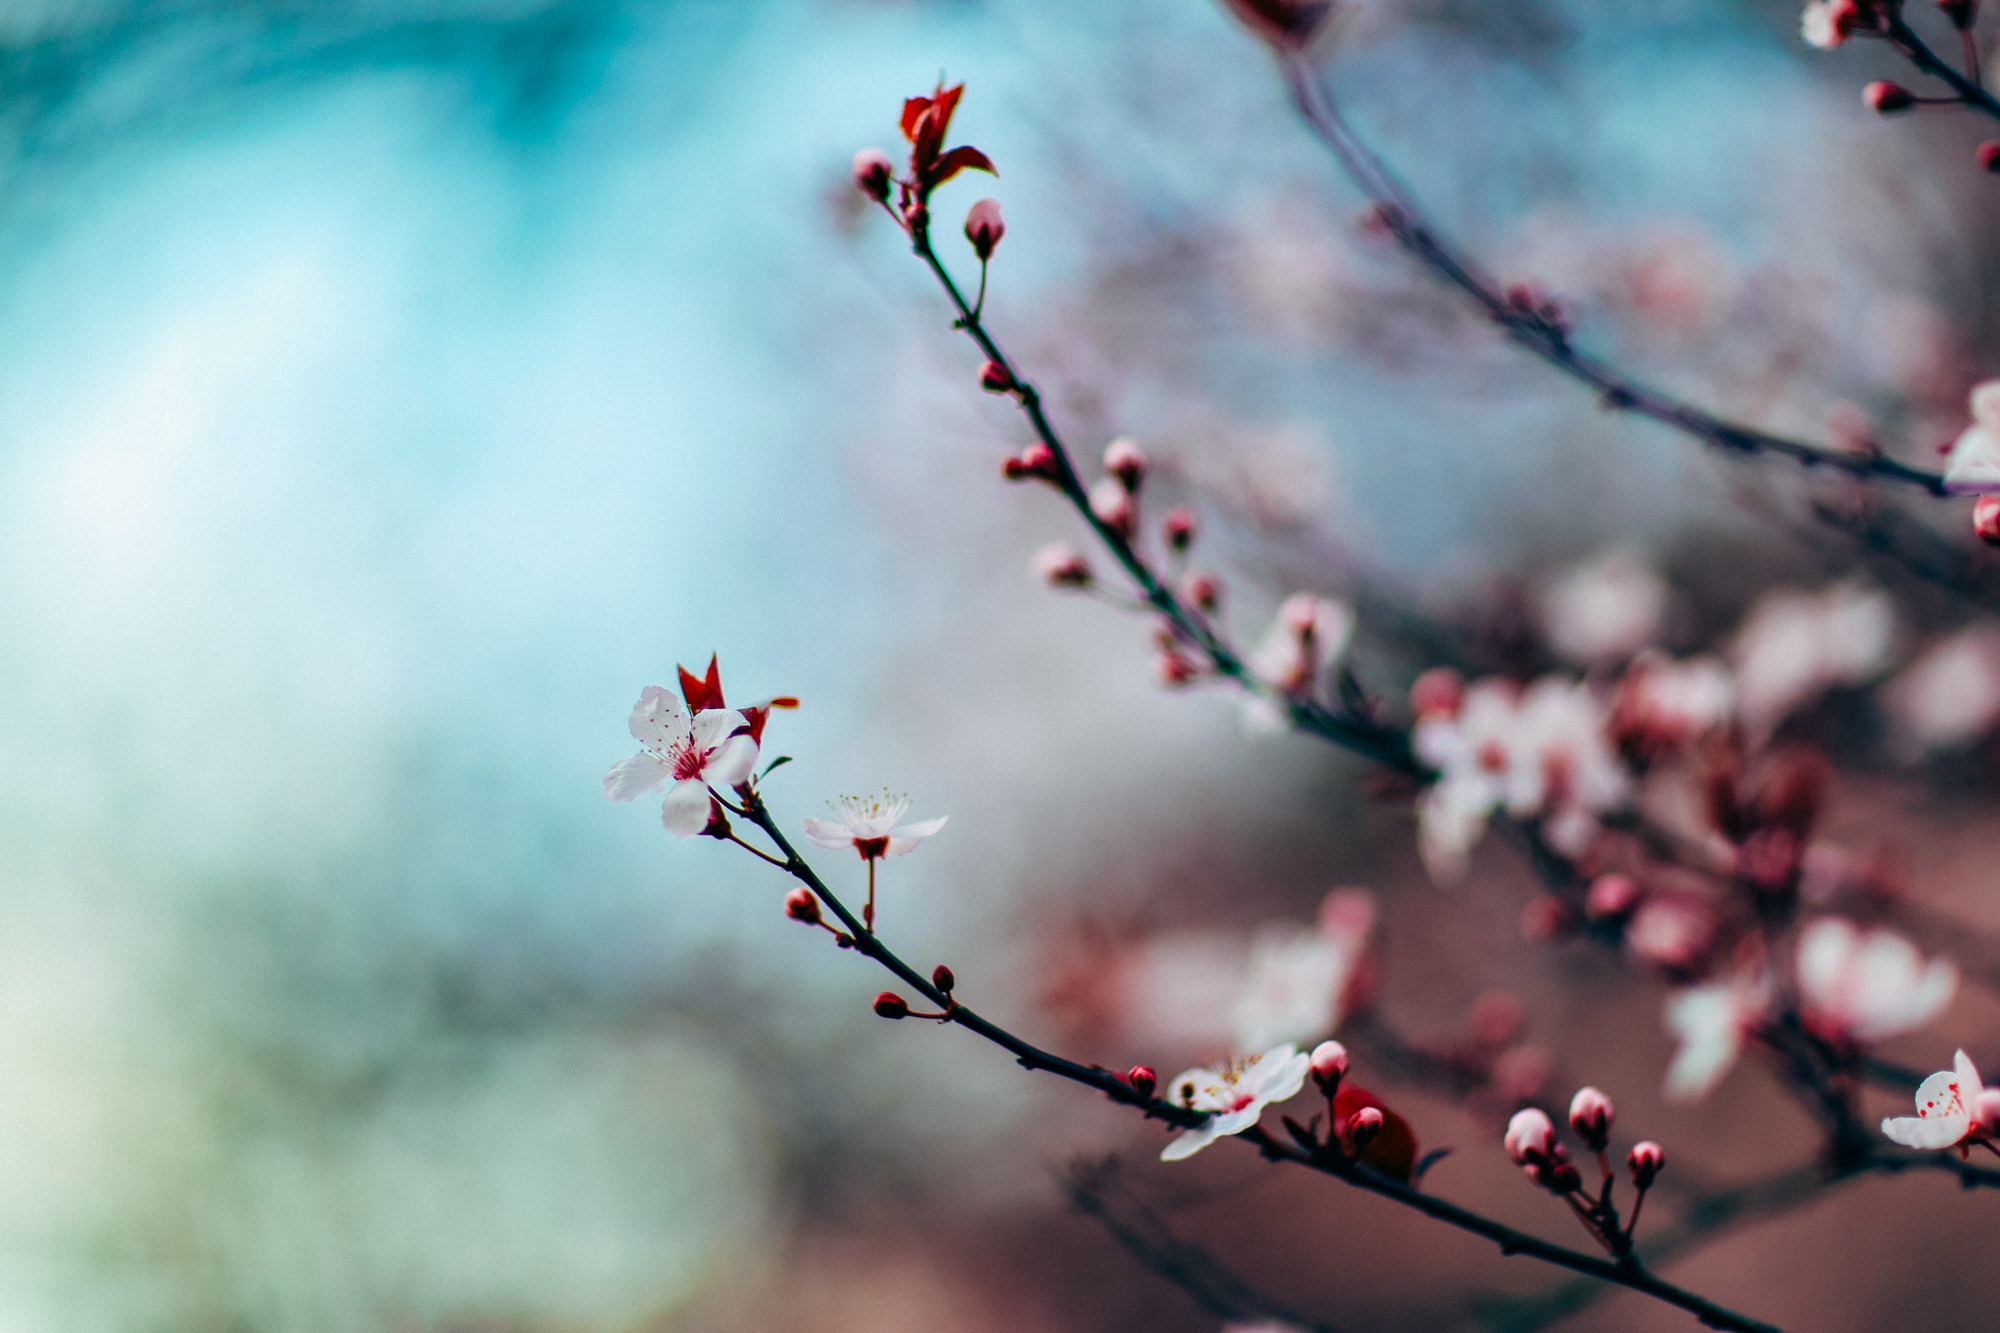 Spring bloom, spring, flower, tree, flowers, nature